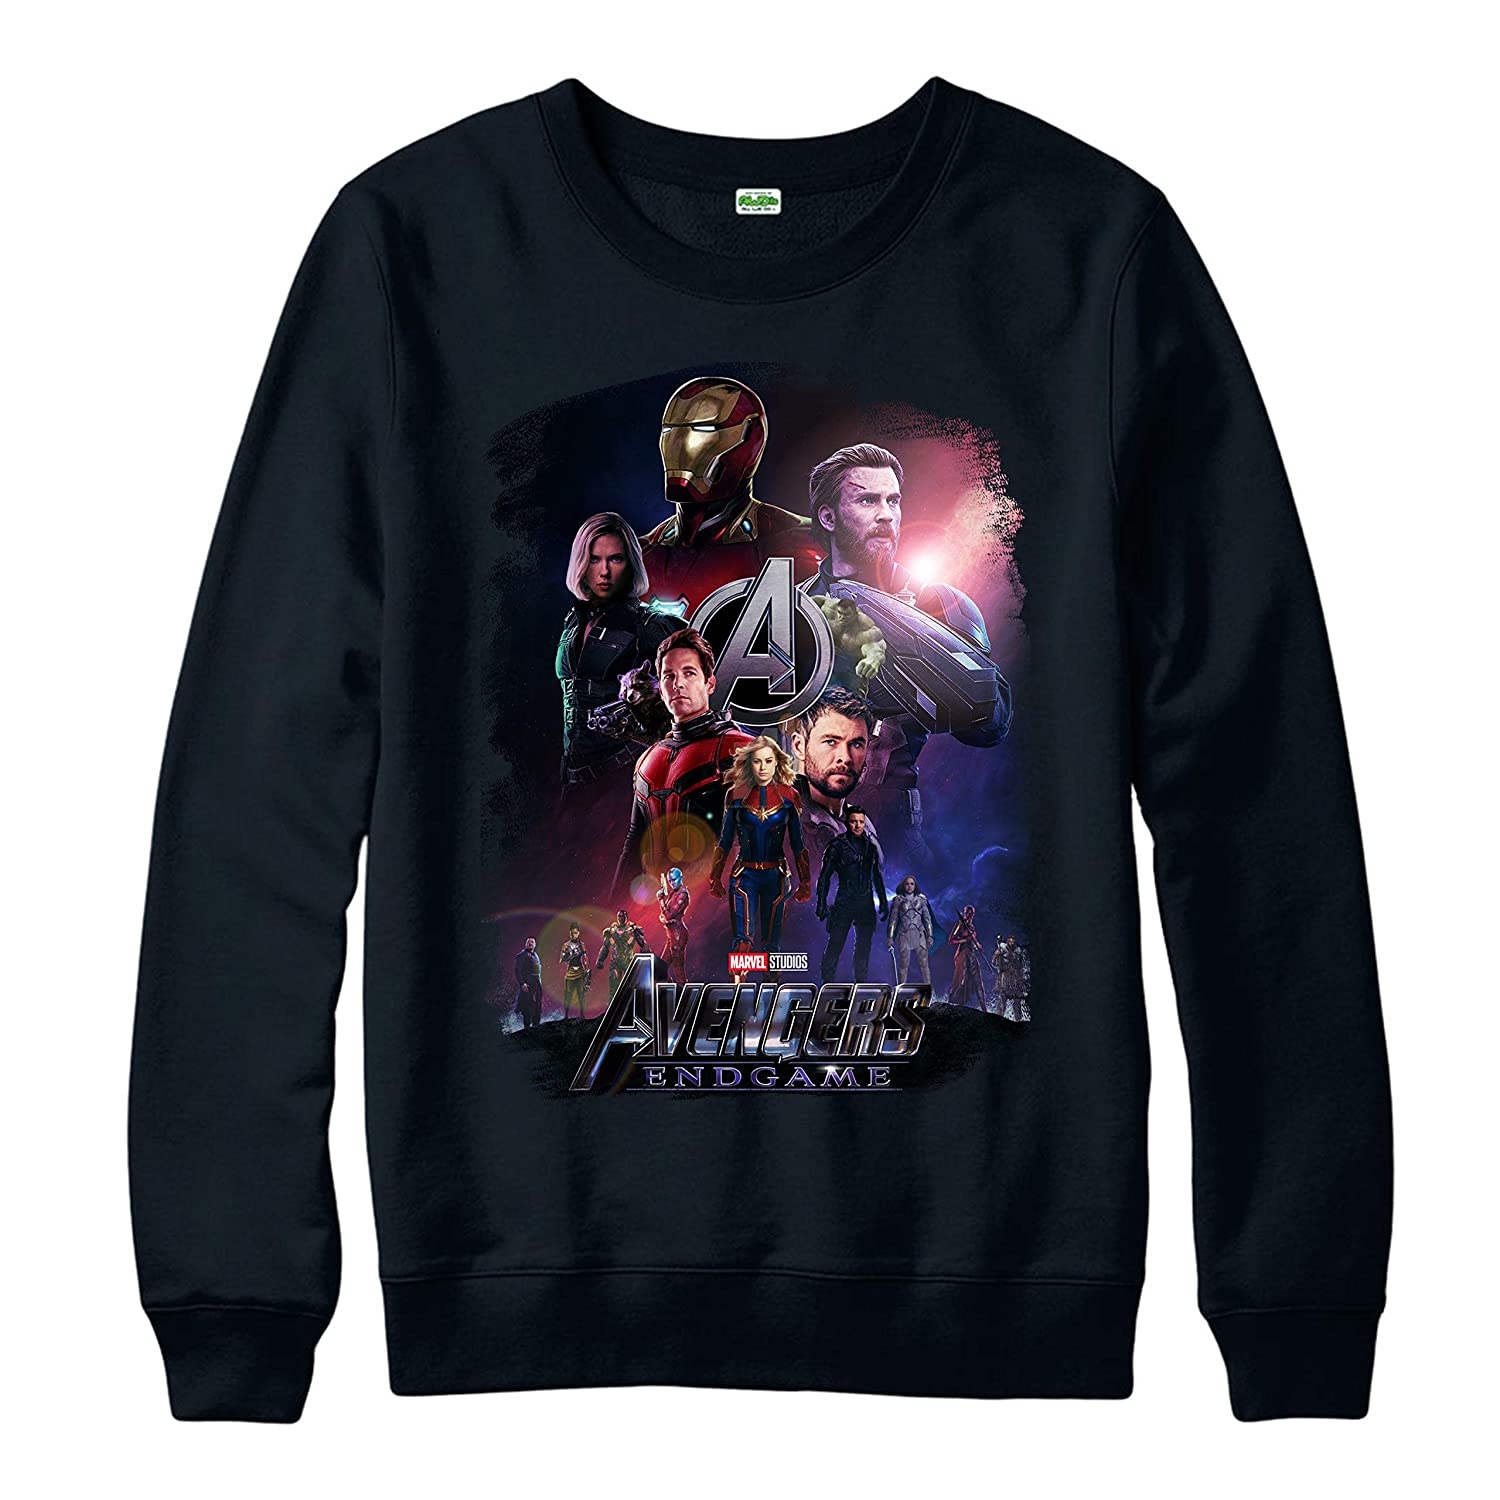 Avengers Endgame Poster Jumper Marvel Comics Superheroes Thanos Avengers All Heroes Party Wear Gift Adult and Kids Sizes Jumper Top